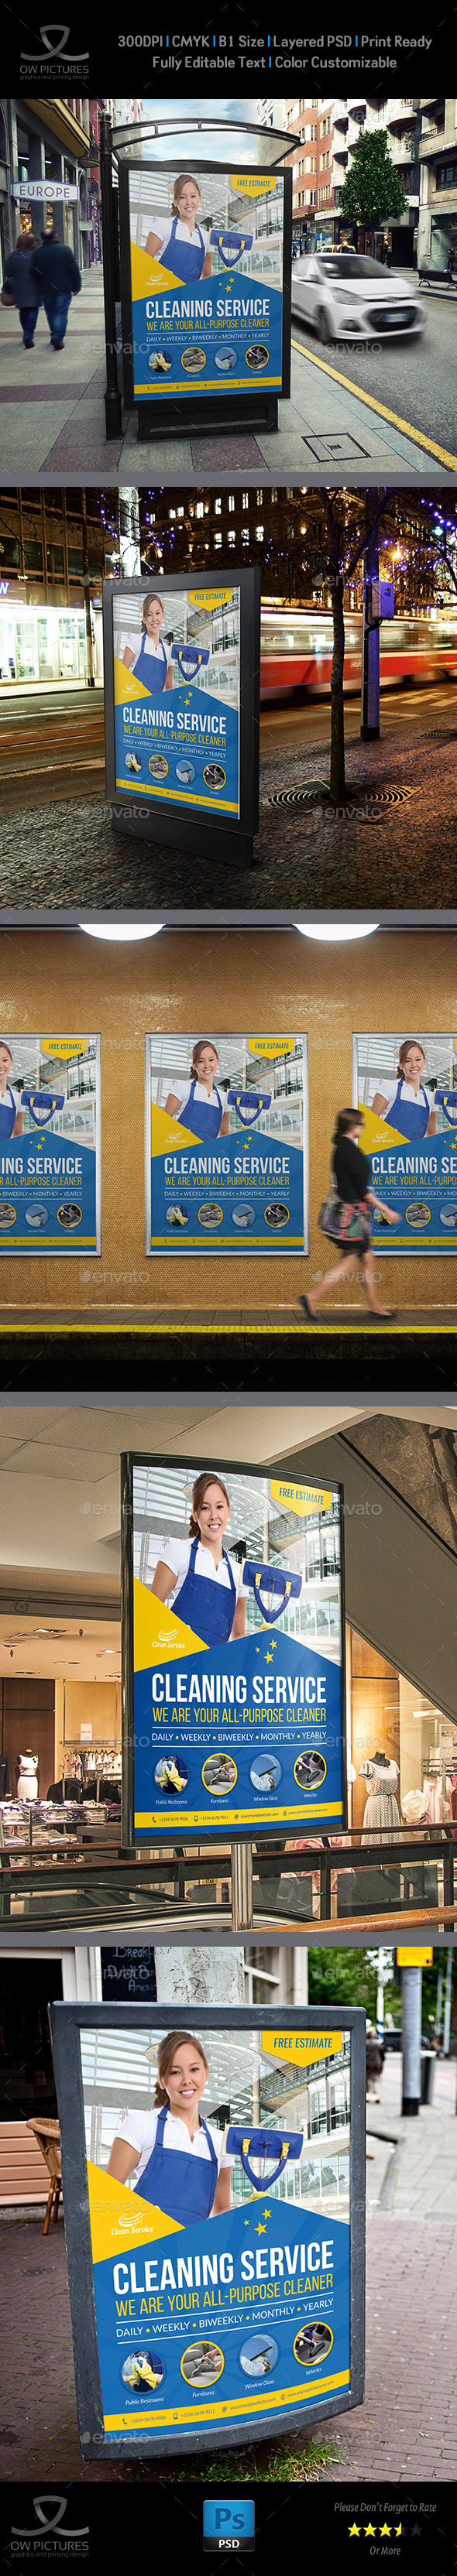 Cleaning Services Poster Template Vol.4 - Signage Print Templates